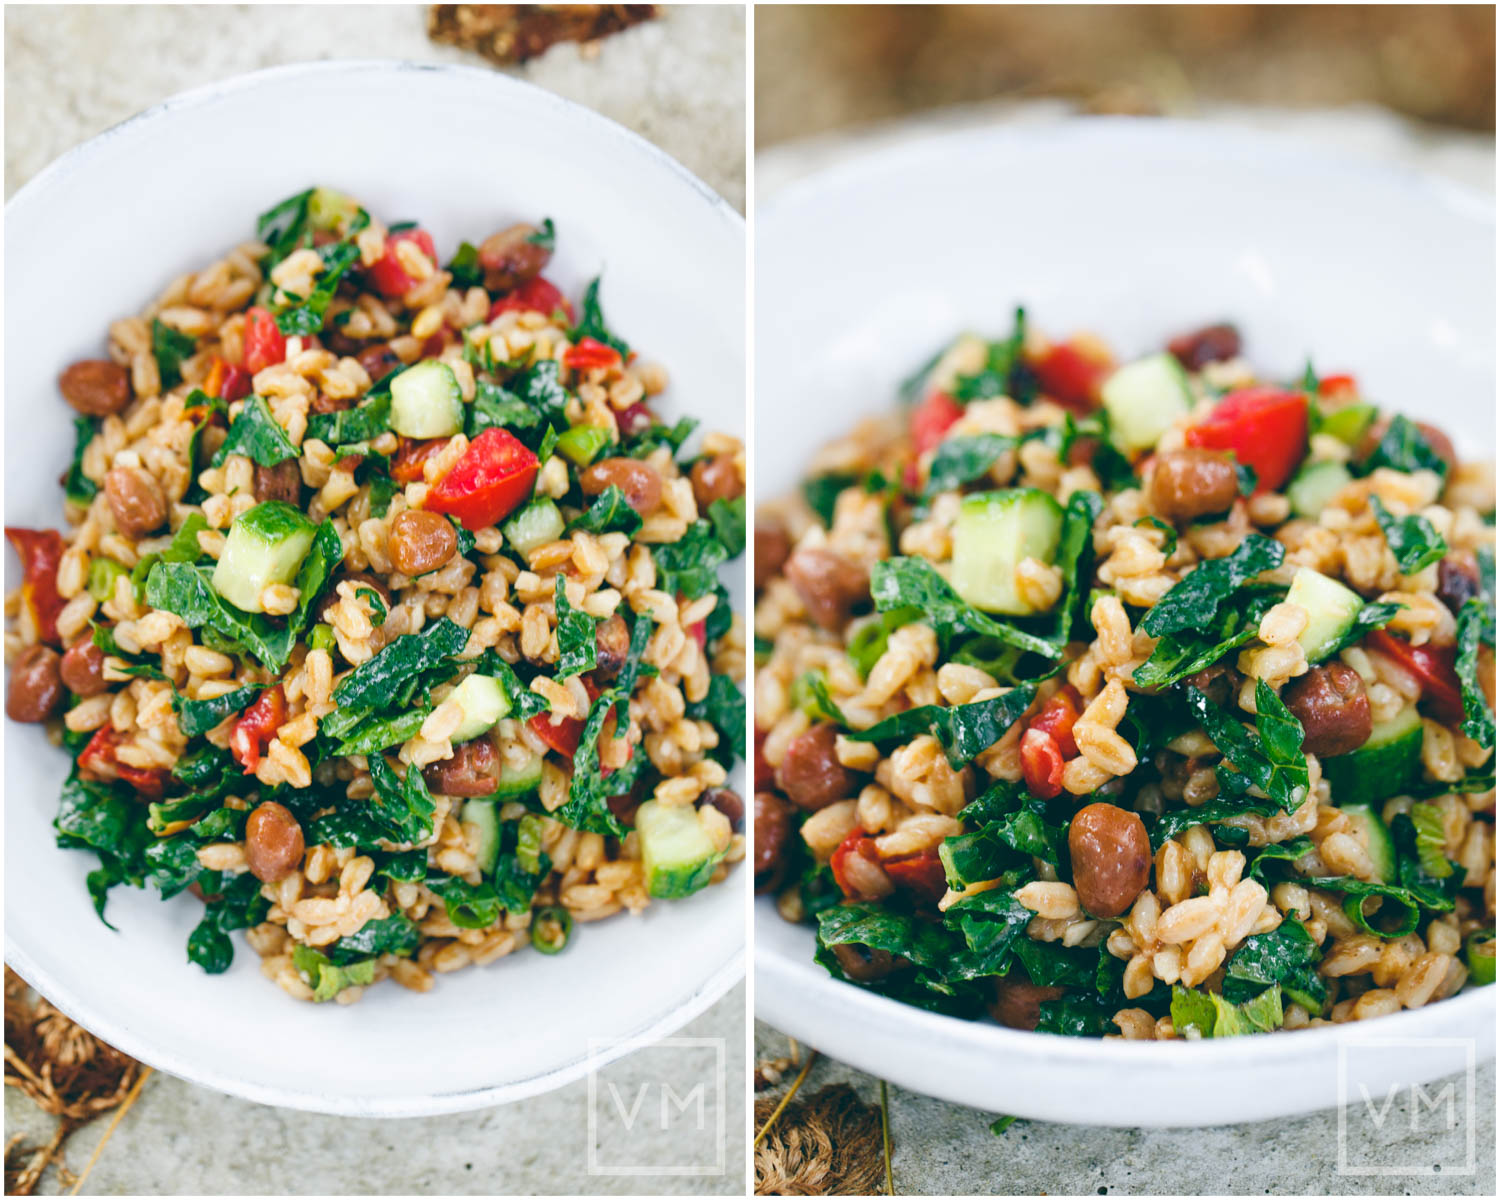 Vegan Farro Salad with Fava Beans